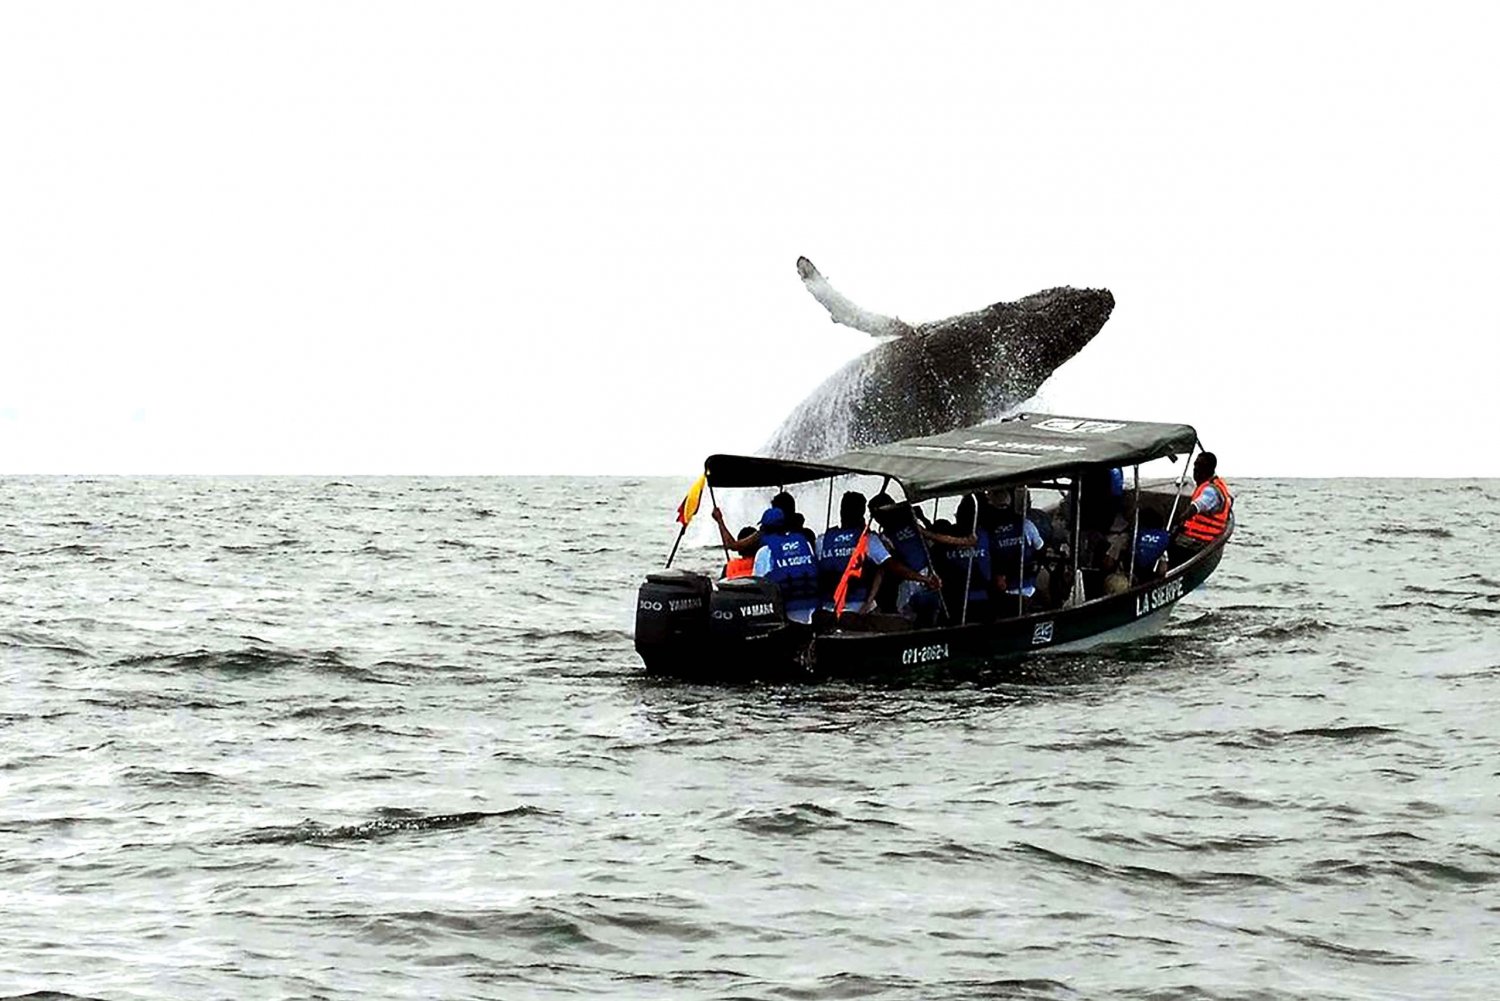 Cali: Whale Watching in the Colombian Pacific